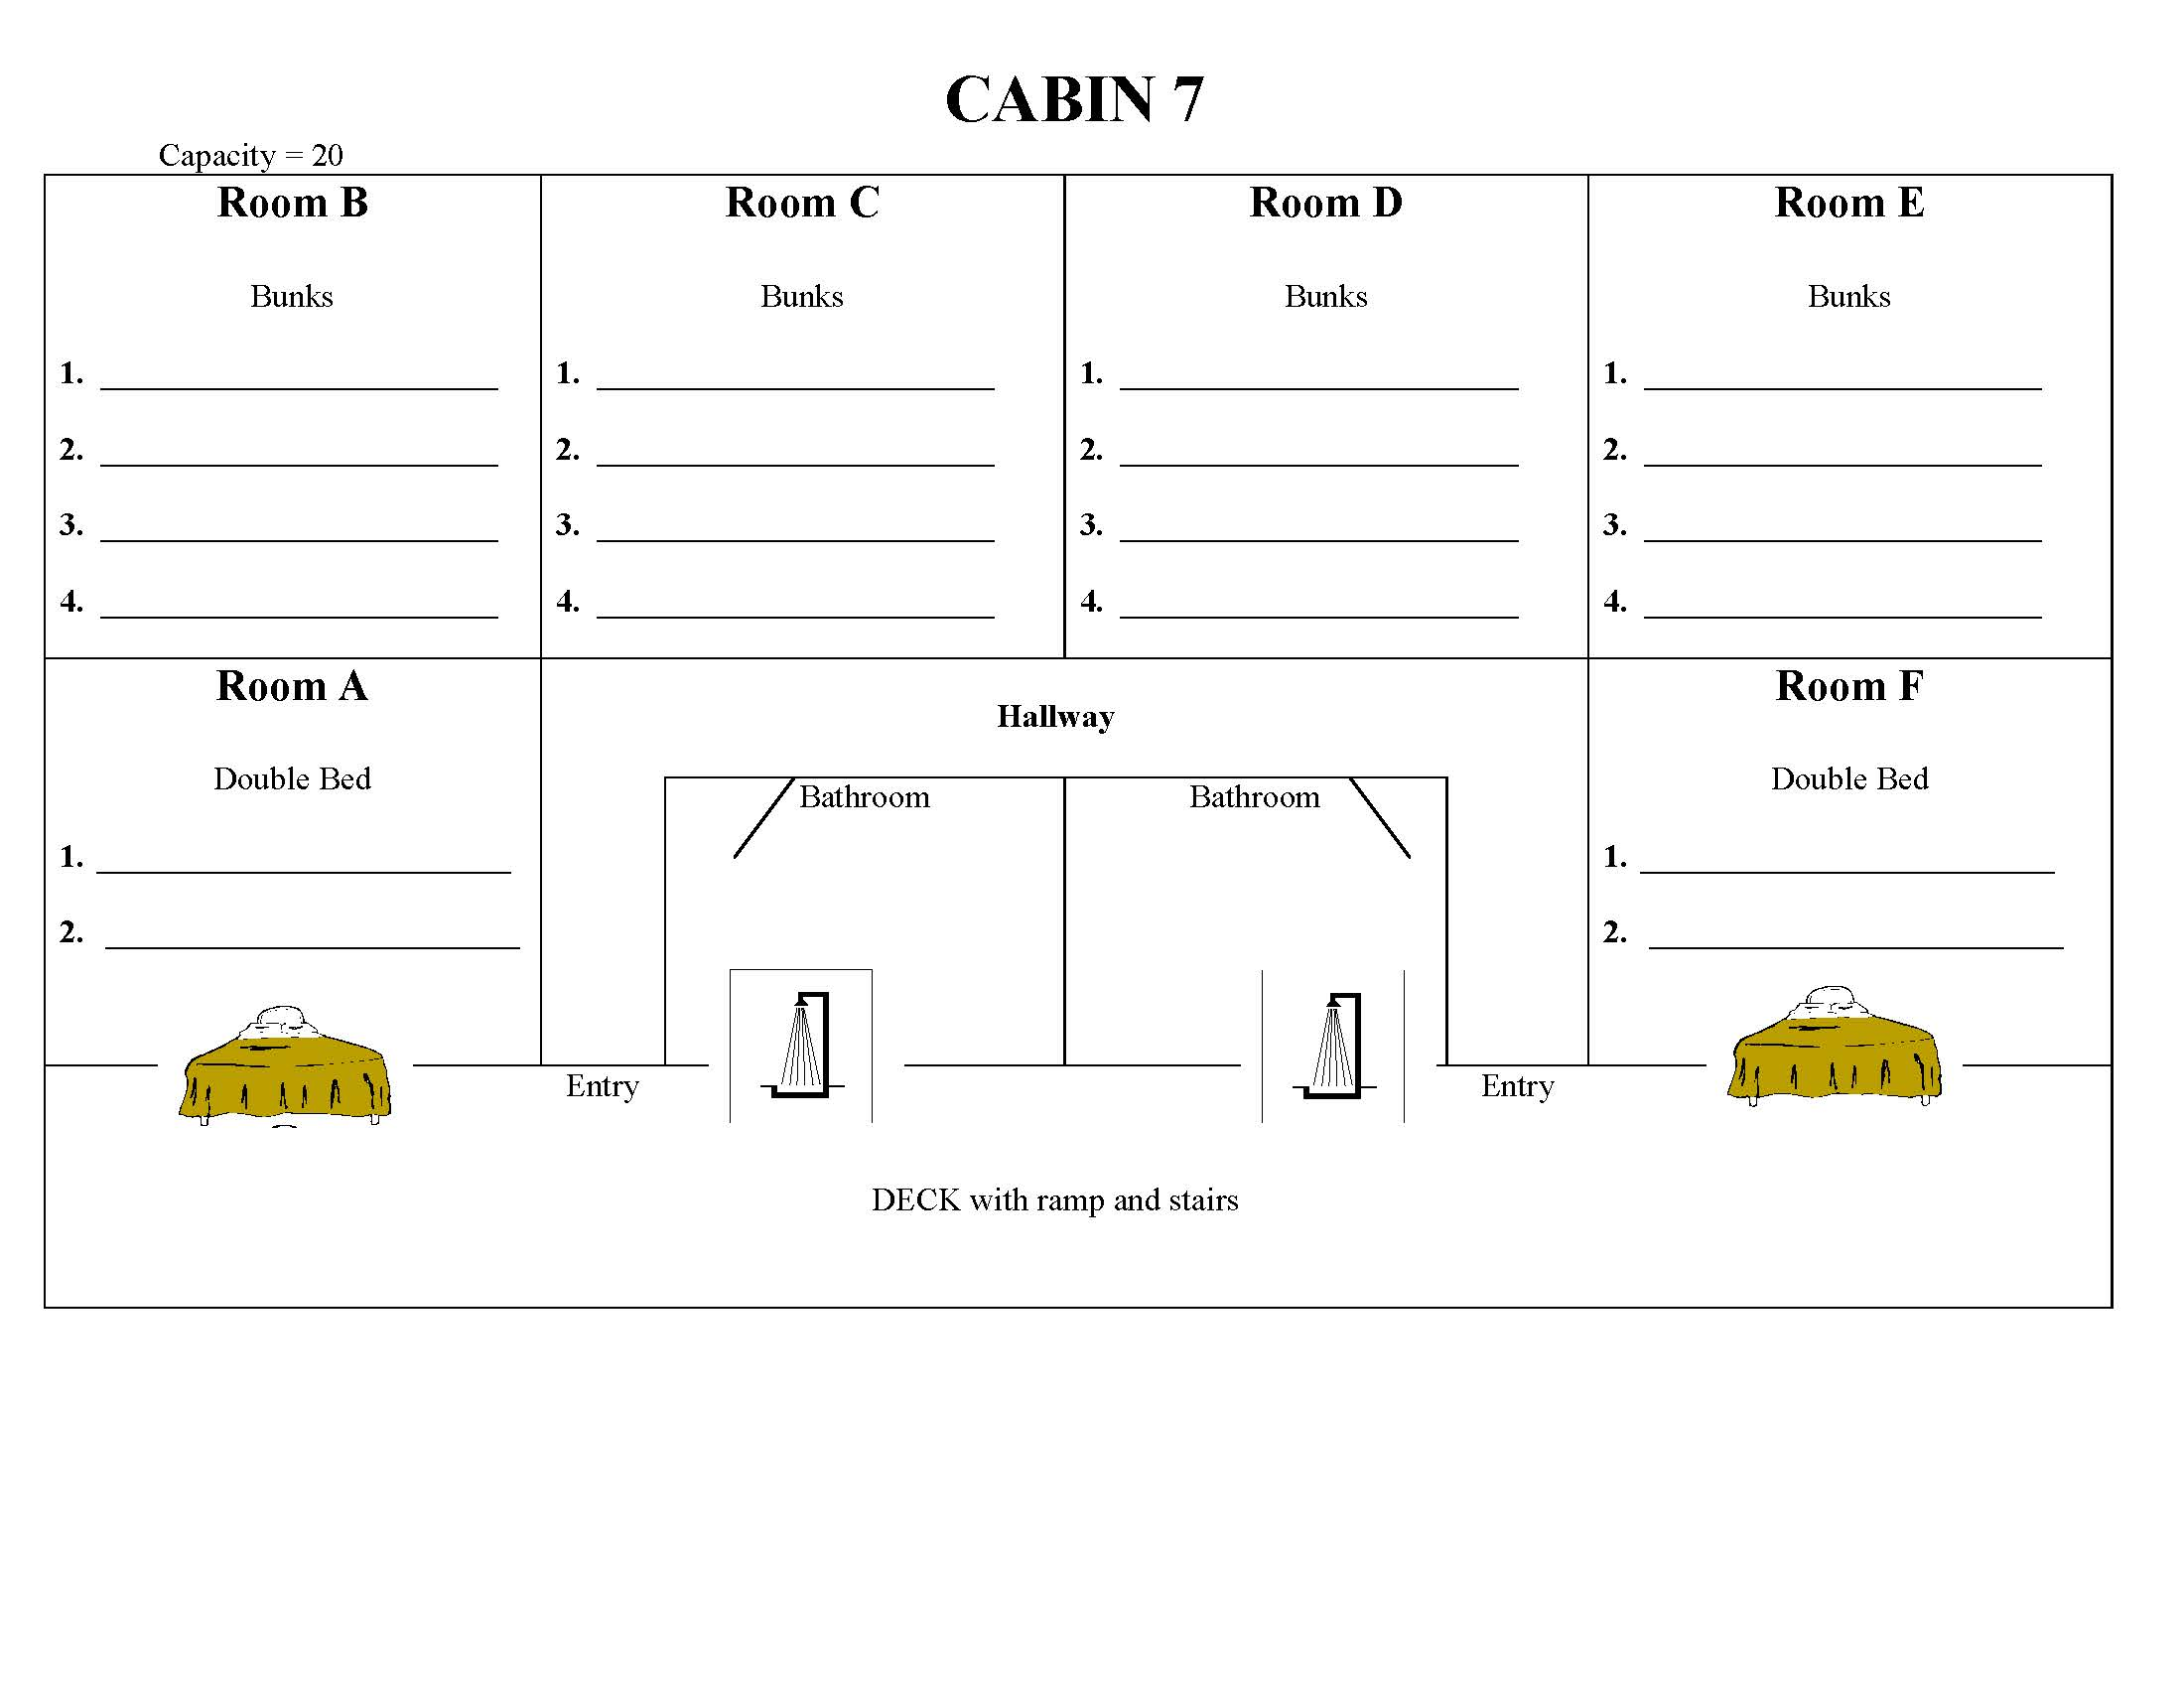 Floor Plan of Cabin 7